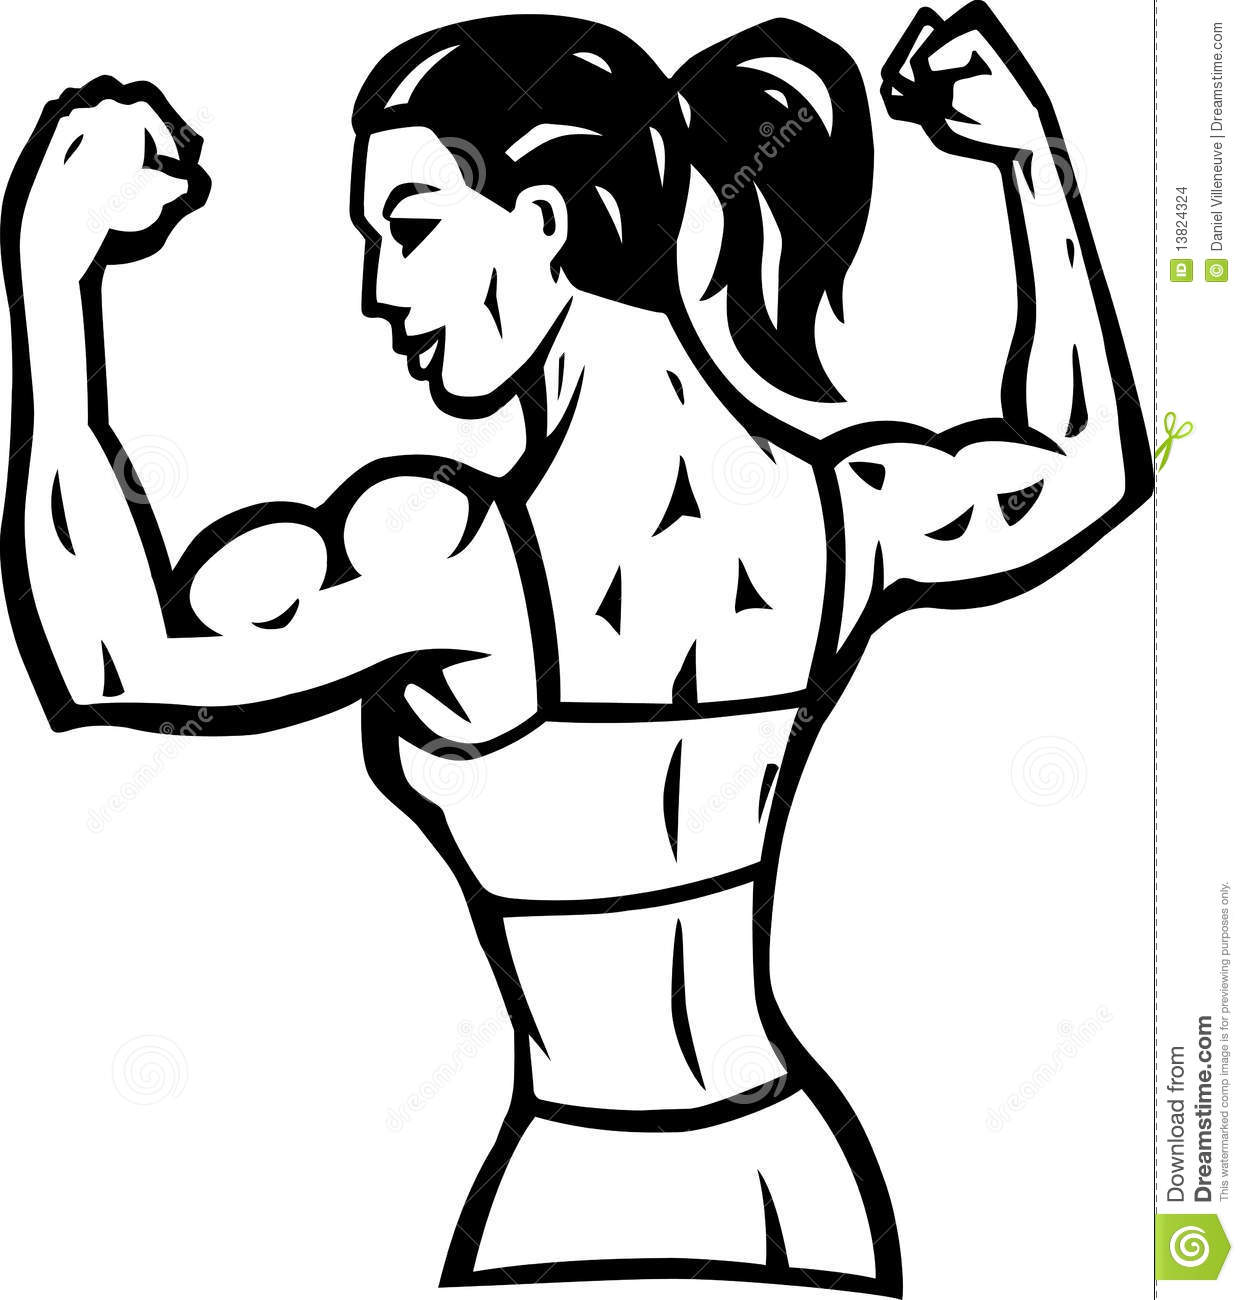 Woman muscle clipart jpg black and white library Woman With Black And White Muscle Clipart #323554 ... jpg black and white library